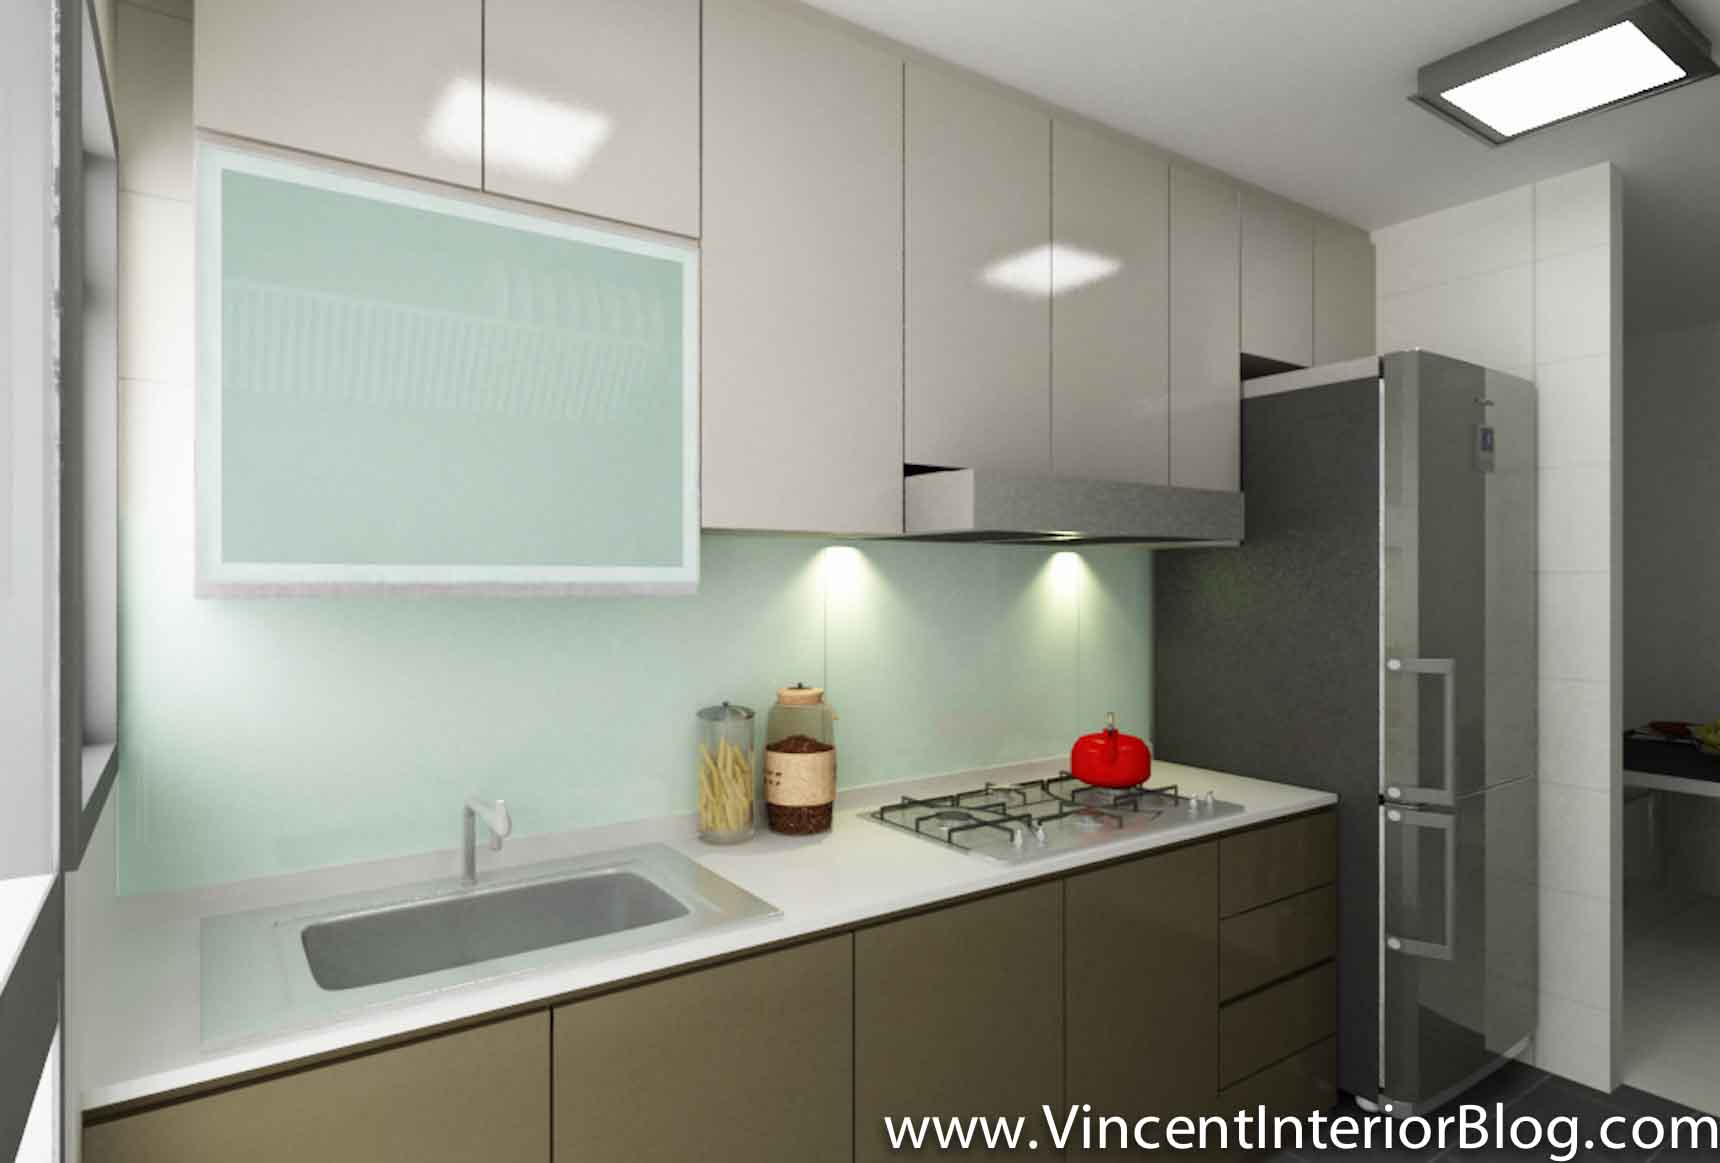 Bto 3 room hdb renovation by interior designer ben ng for Home decor 3 room flat